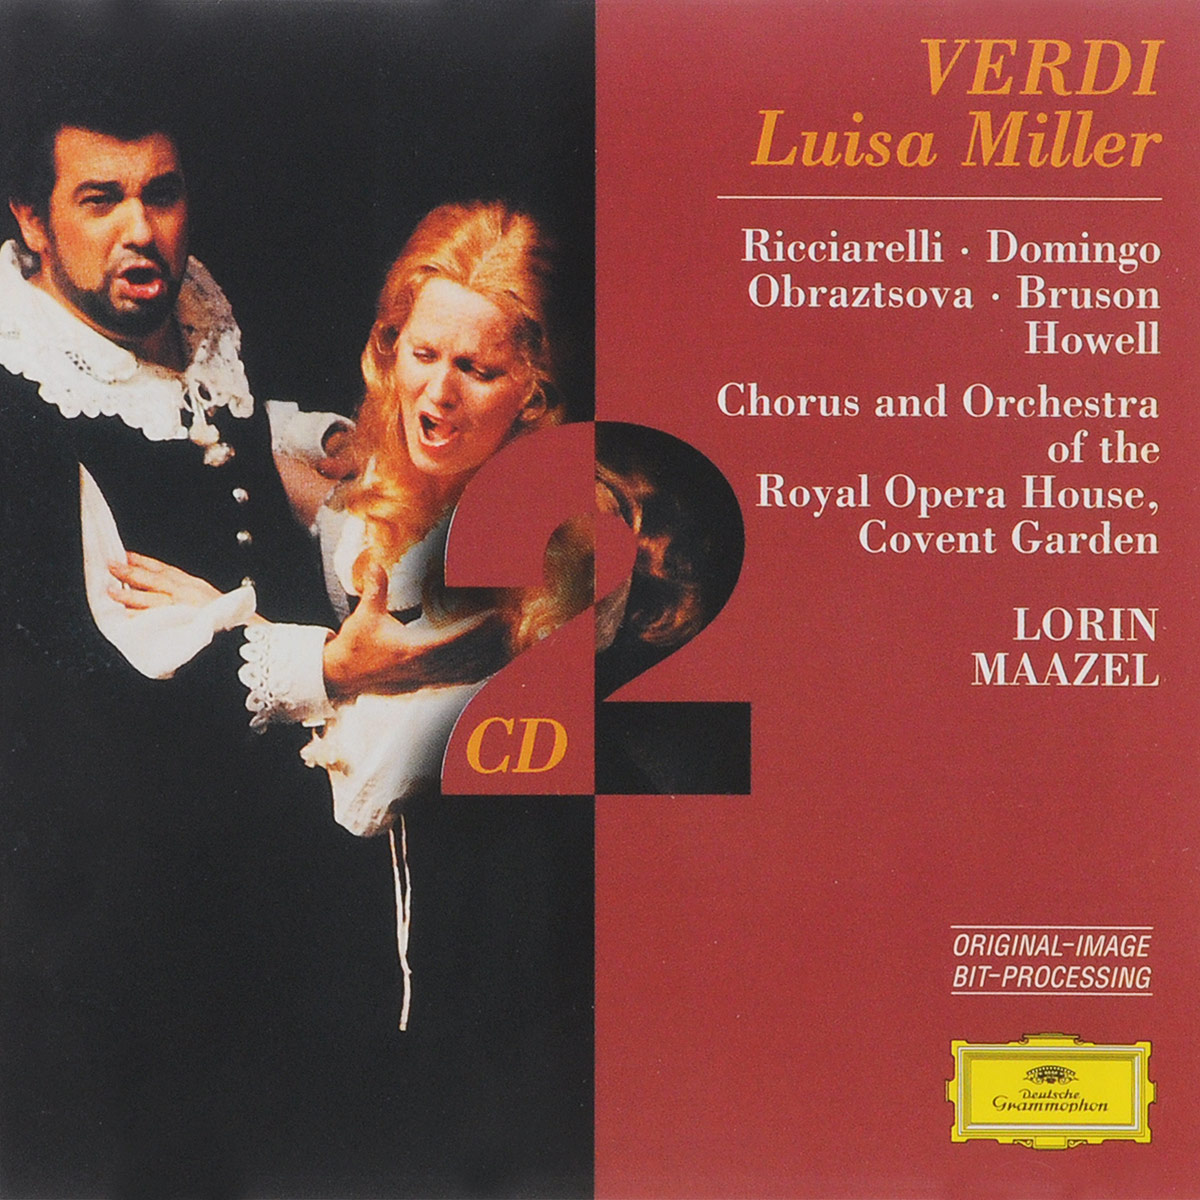 Лорин Маазель,Chorus And Orchestra Of The Royal Opera House Lorin Maazel. Verdi. Luisa Miller (2 CD) berliner philharmoniker лорин маазель тамаш вашари the london symphony orchestra юрий ахронович maazel vasary ahronovitch rachmaninov complete symphonies